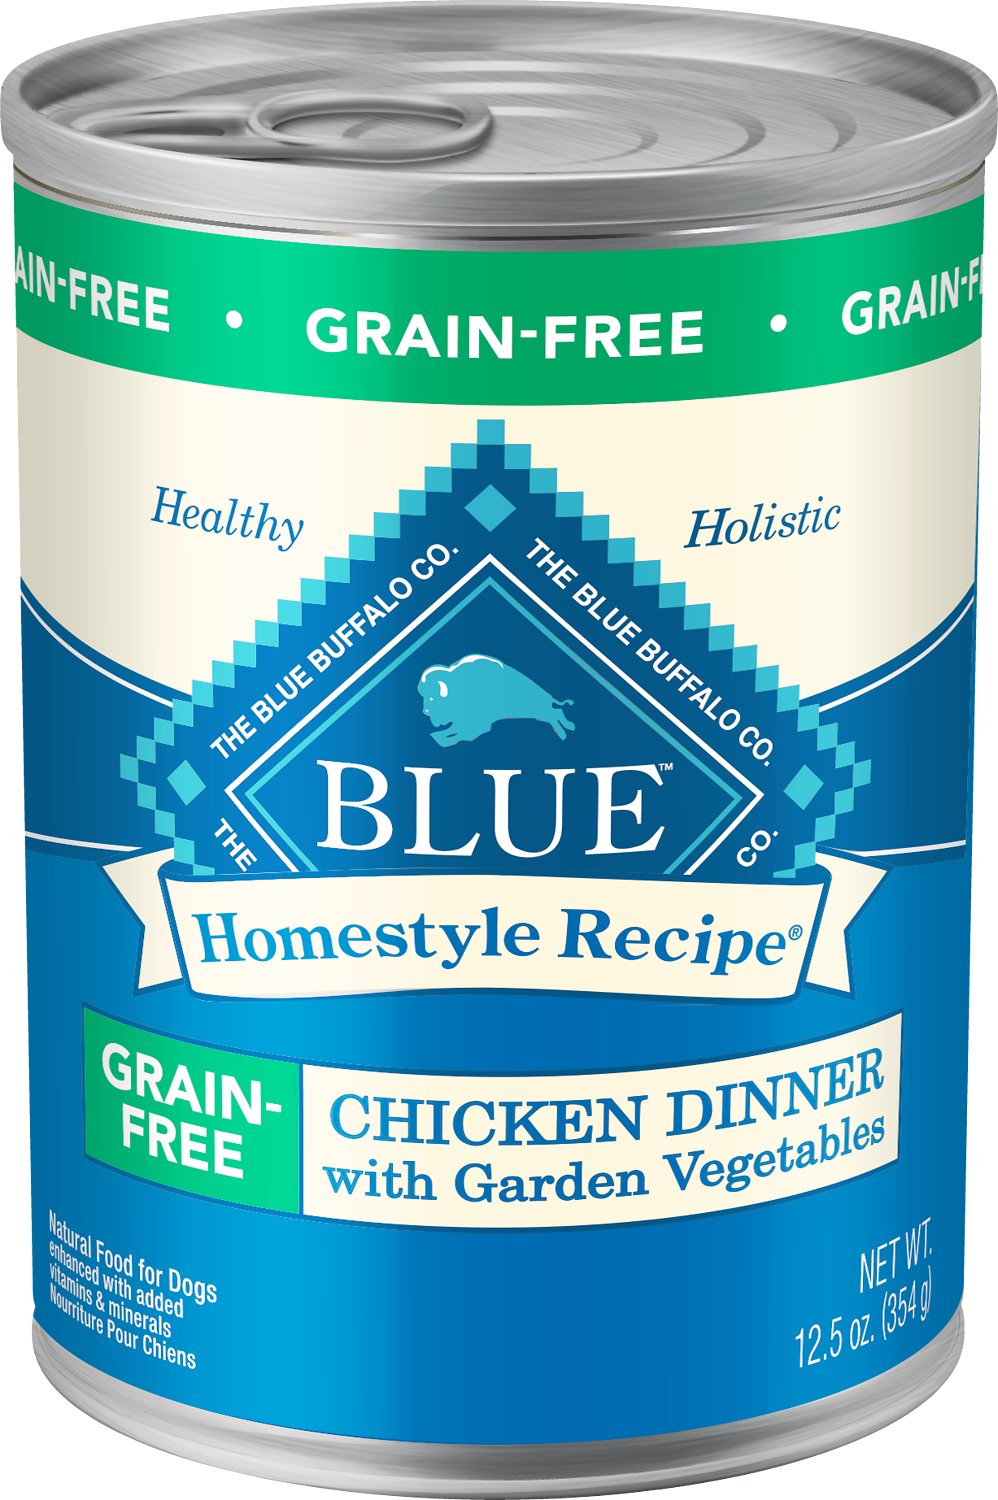 Blue Buffalo Homestyle Recipe Chicken Dinner With Garden Vegetables Grain Free Canned Dog Food 12 5 Oz Case Of 12